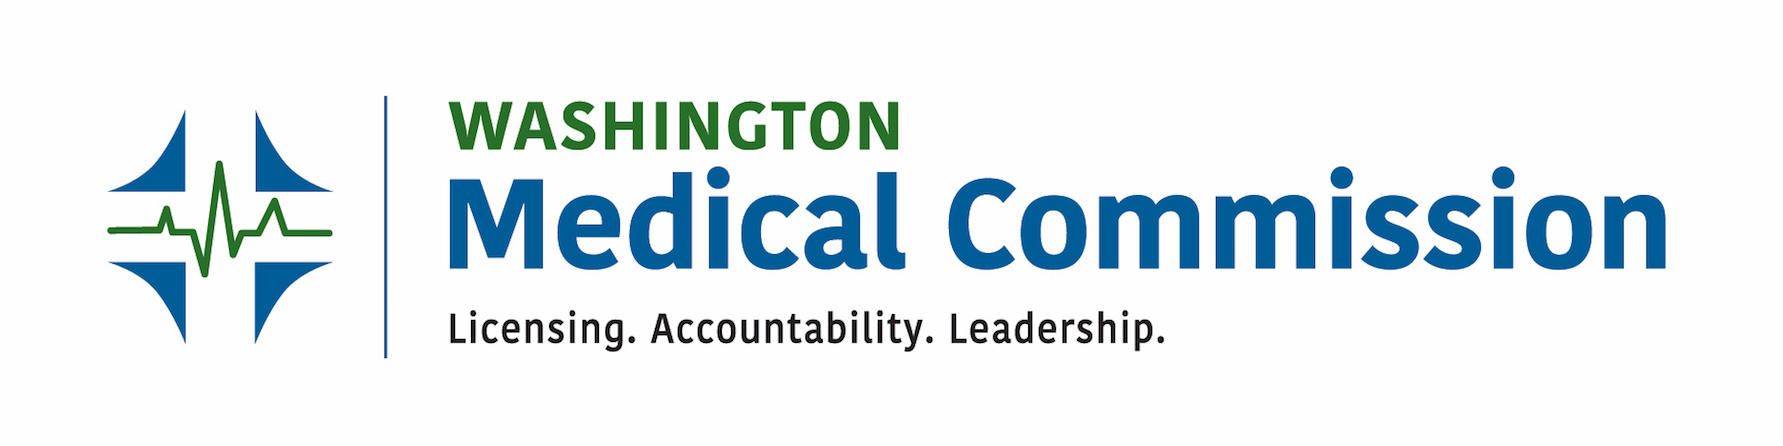 Washington Medical Commission Banner